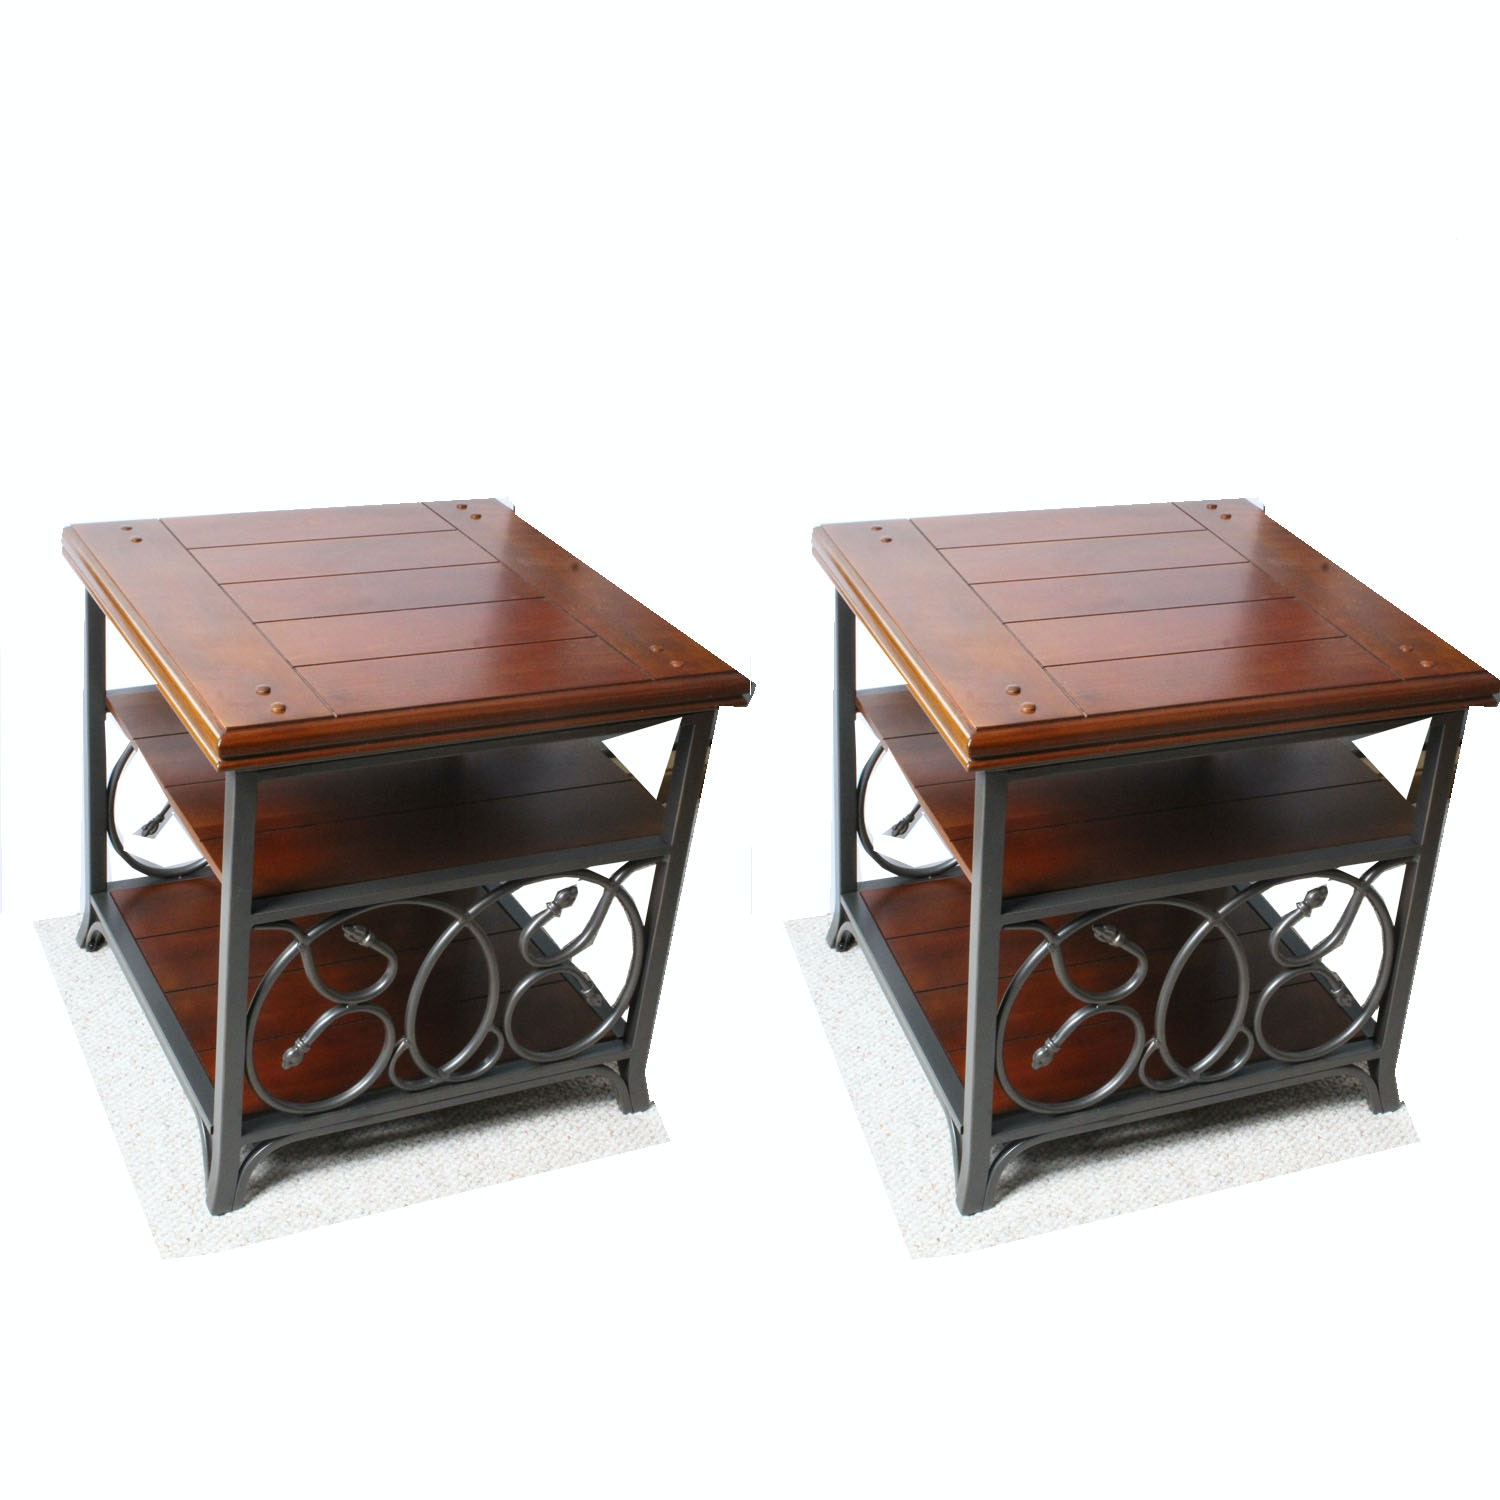 Contemporary Wood and Metal End Table Set